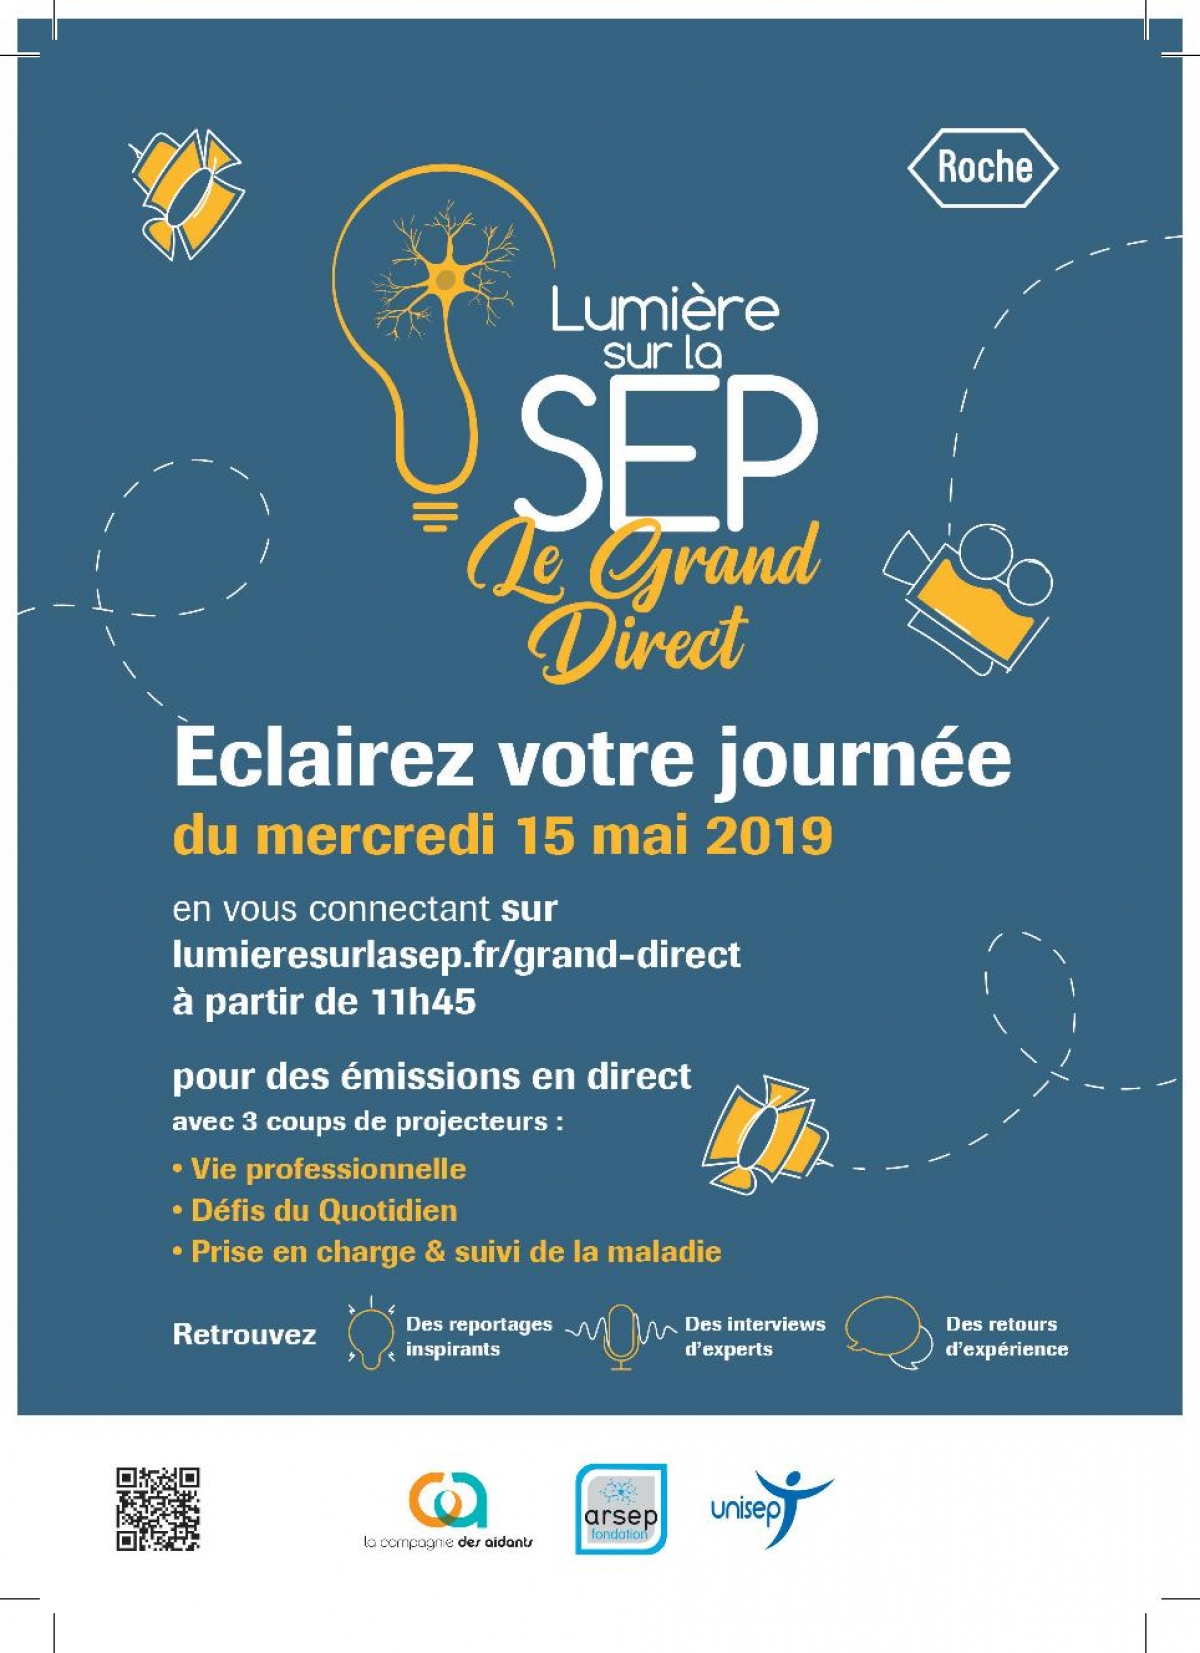 LUMIERE SUR LA SEP : LE GRAND DIRECT !